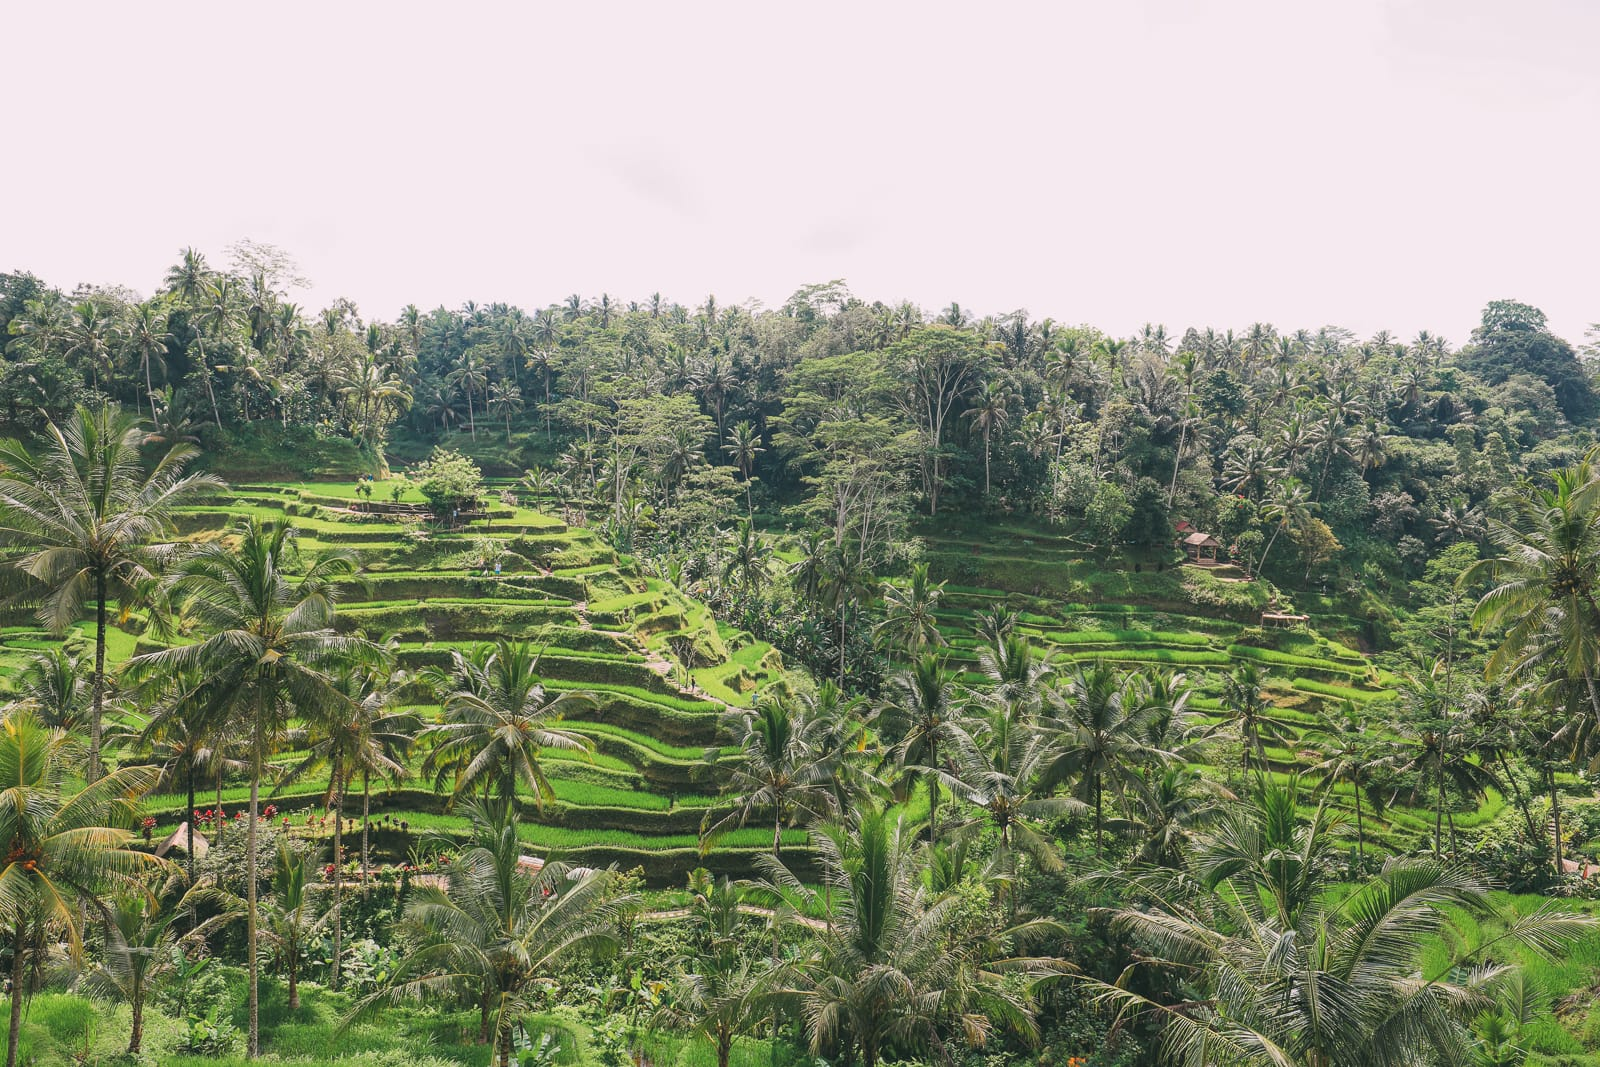 Bali Travel - Tegalalang Rice Terrace In Ubud And Gunung Kawi Temple (2)